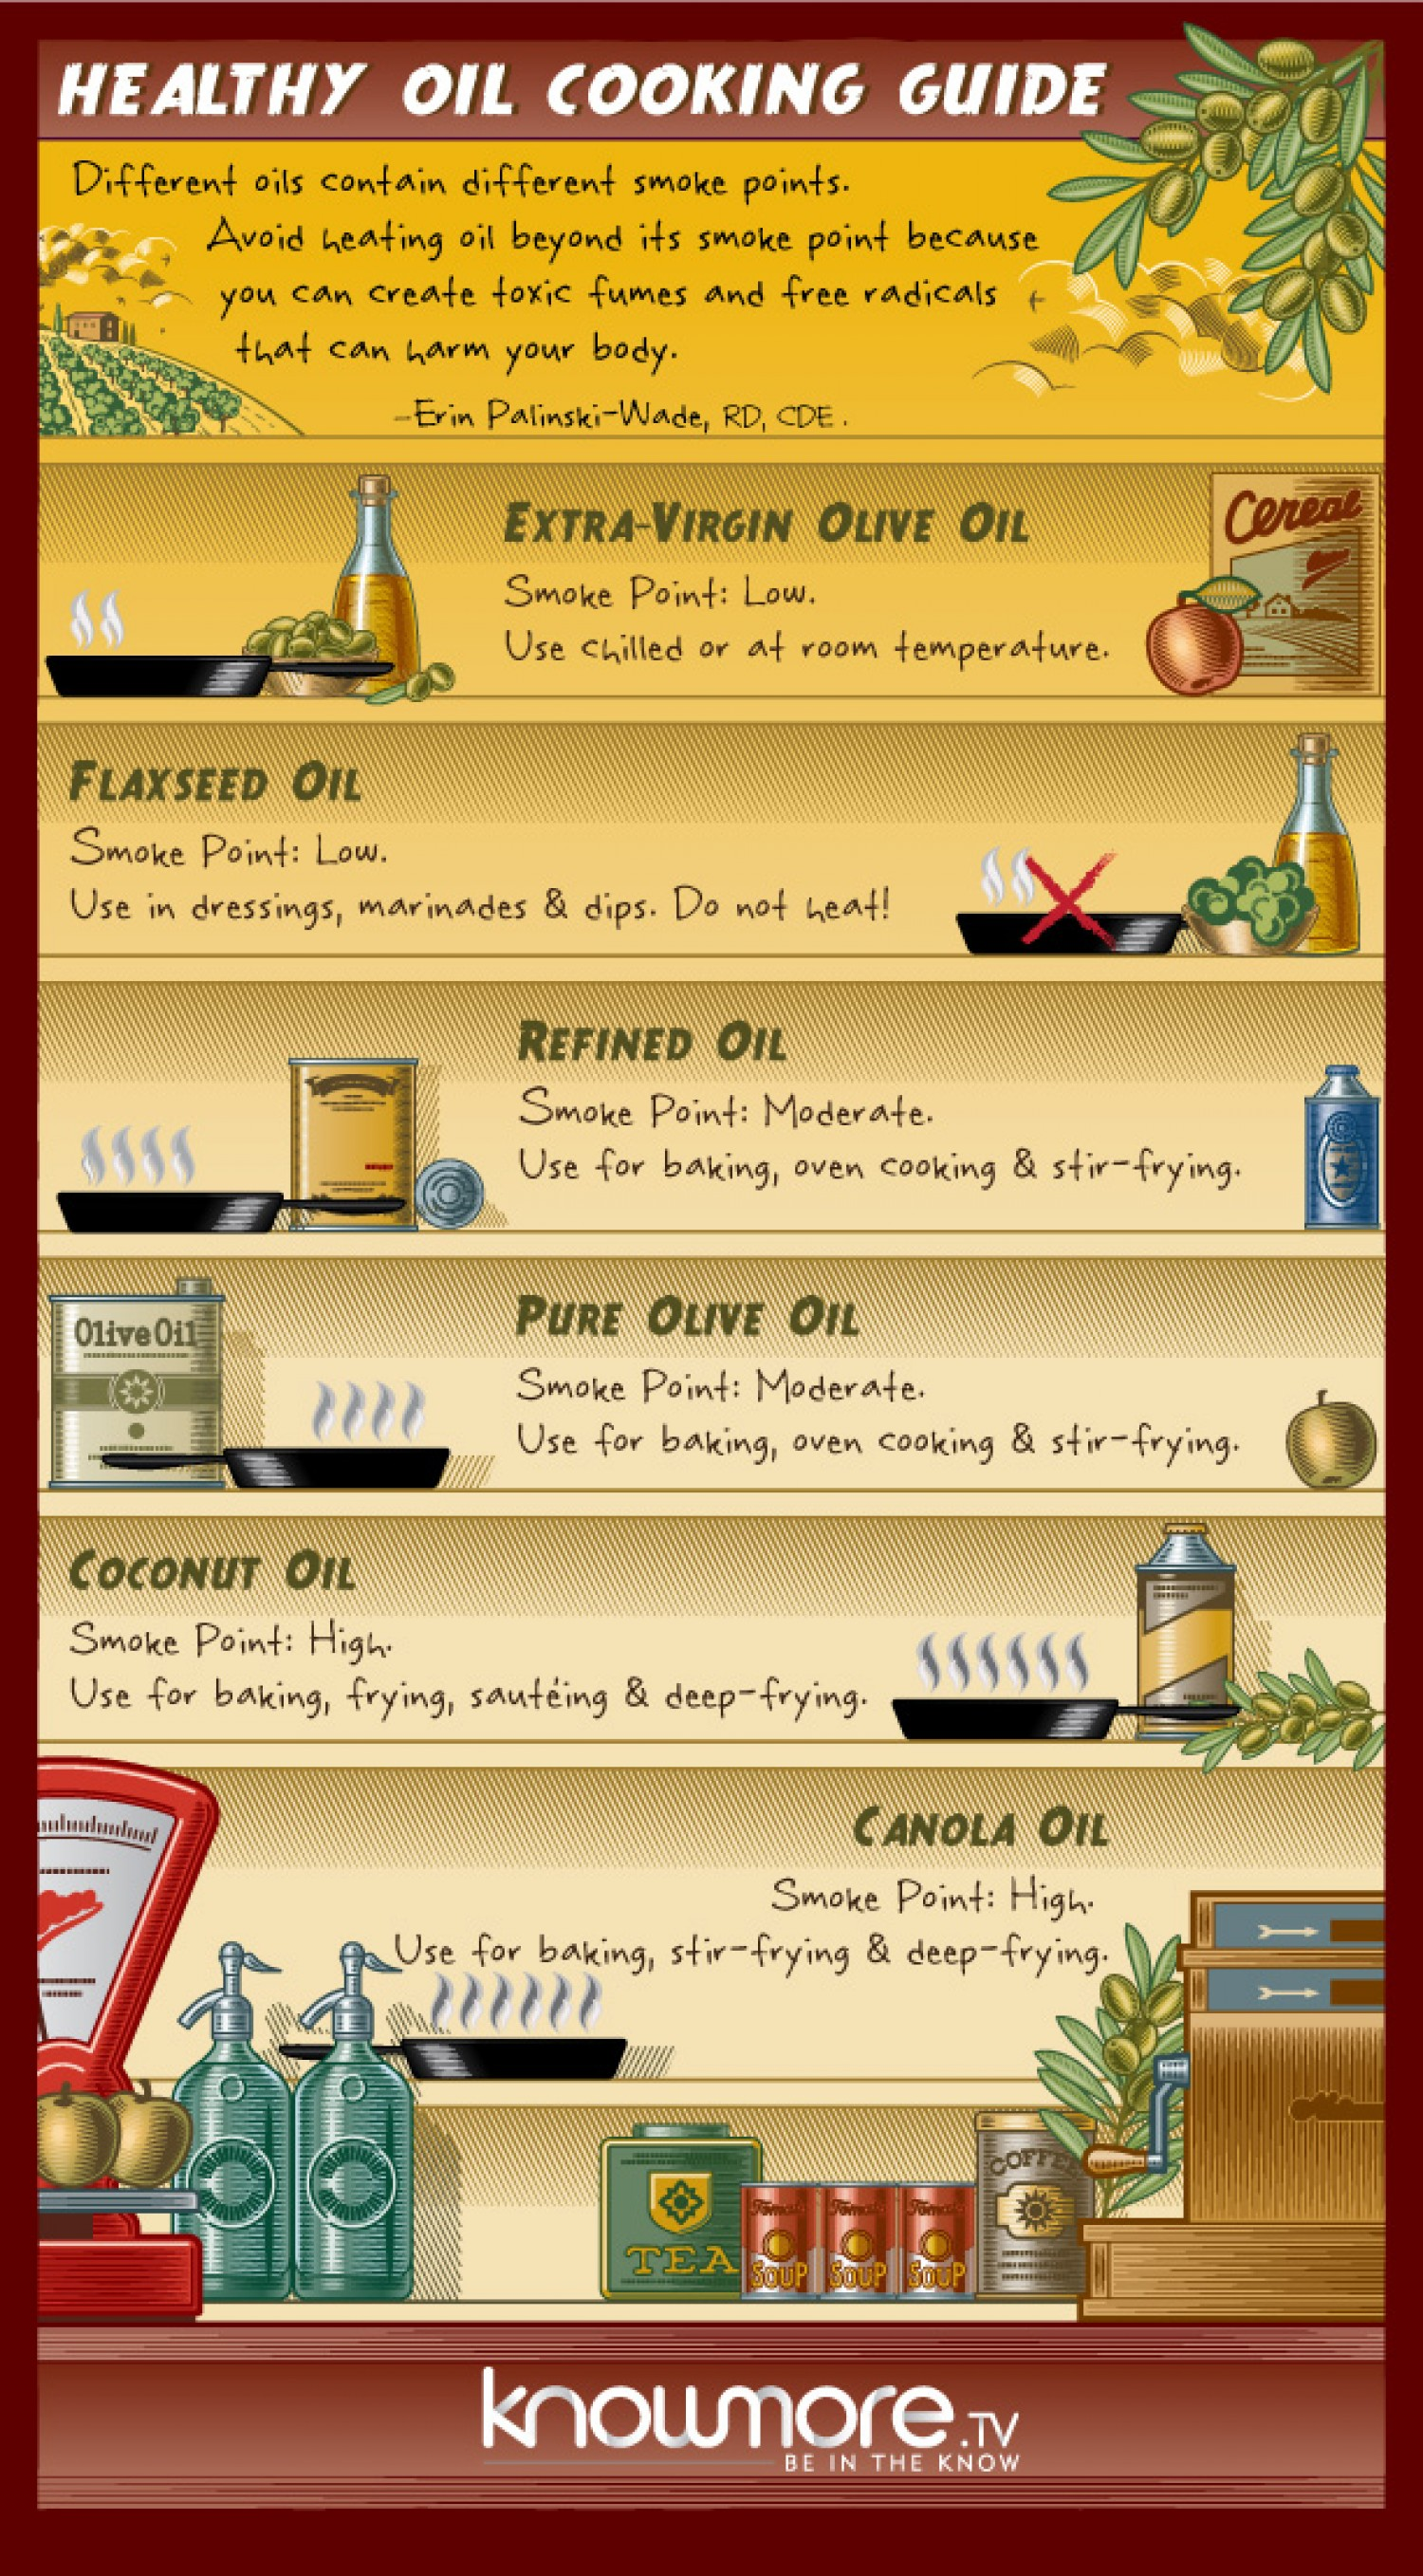 healthy-oil-cooking-guide_518288ad3a727_w1500